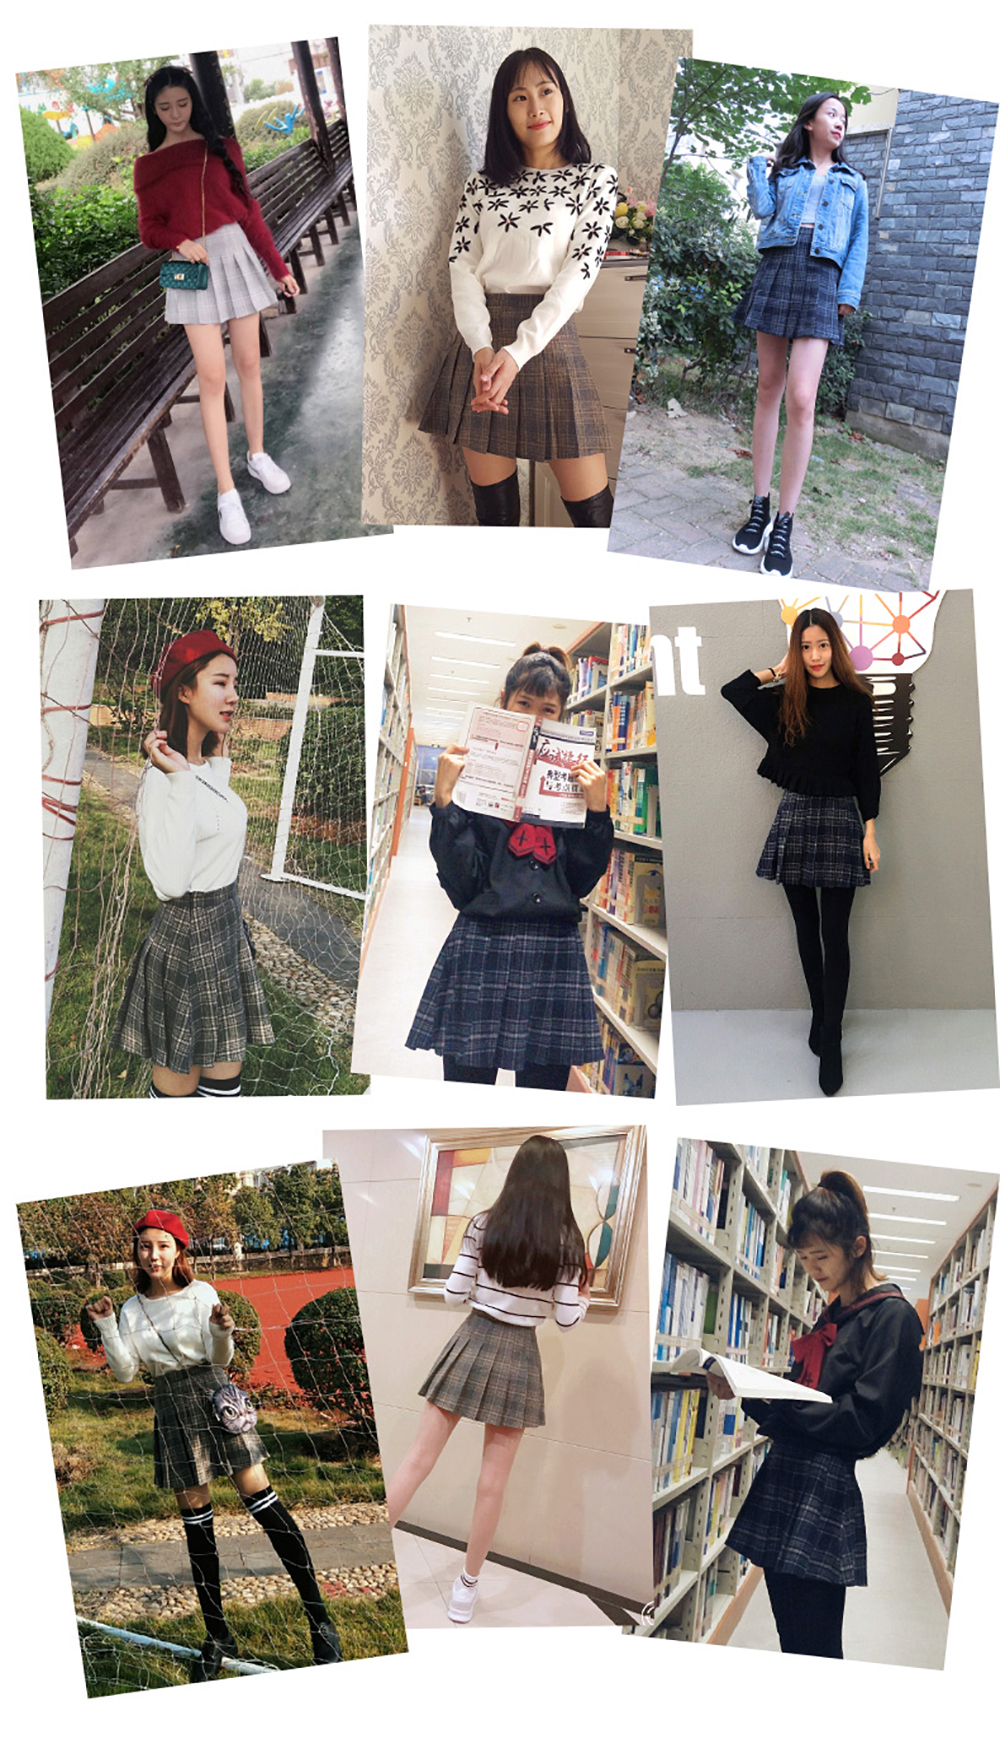 Plus Size Harajuku Short Skirt New Korean Plaid Skirt Women Zipper High Waist School Girl Pleated Plaid Skirt Sexy Mini Skirt 6